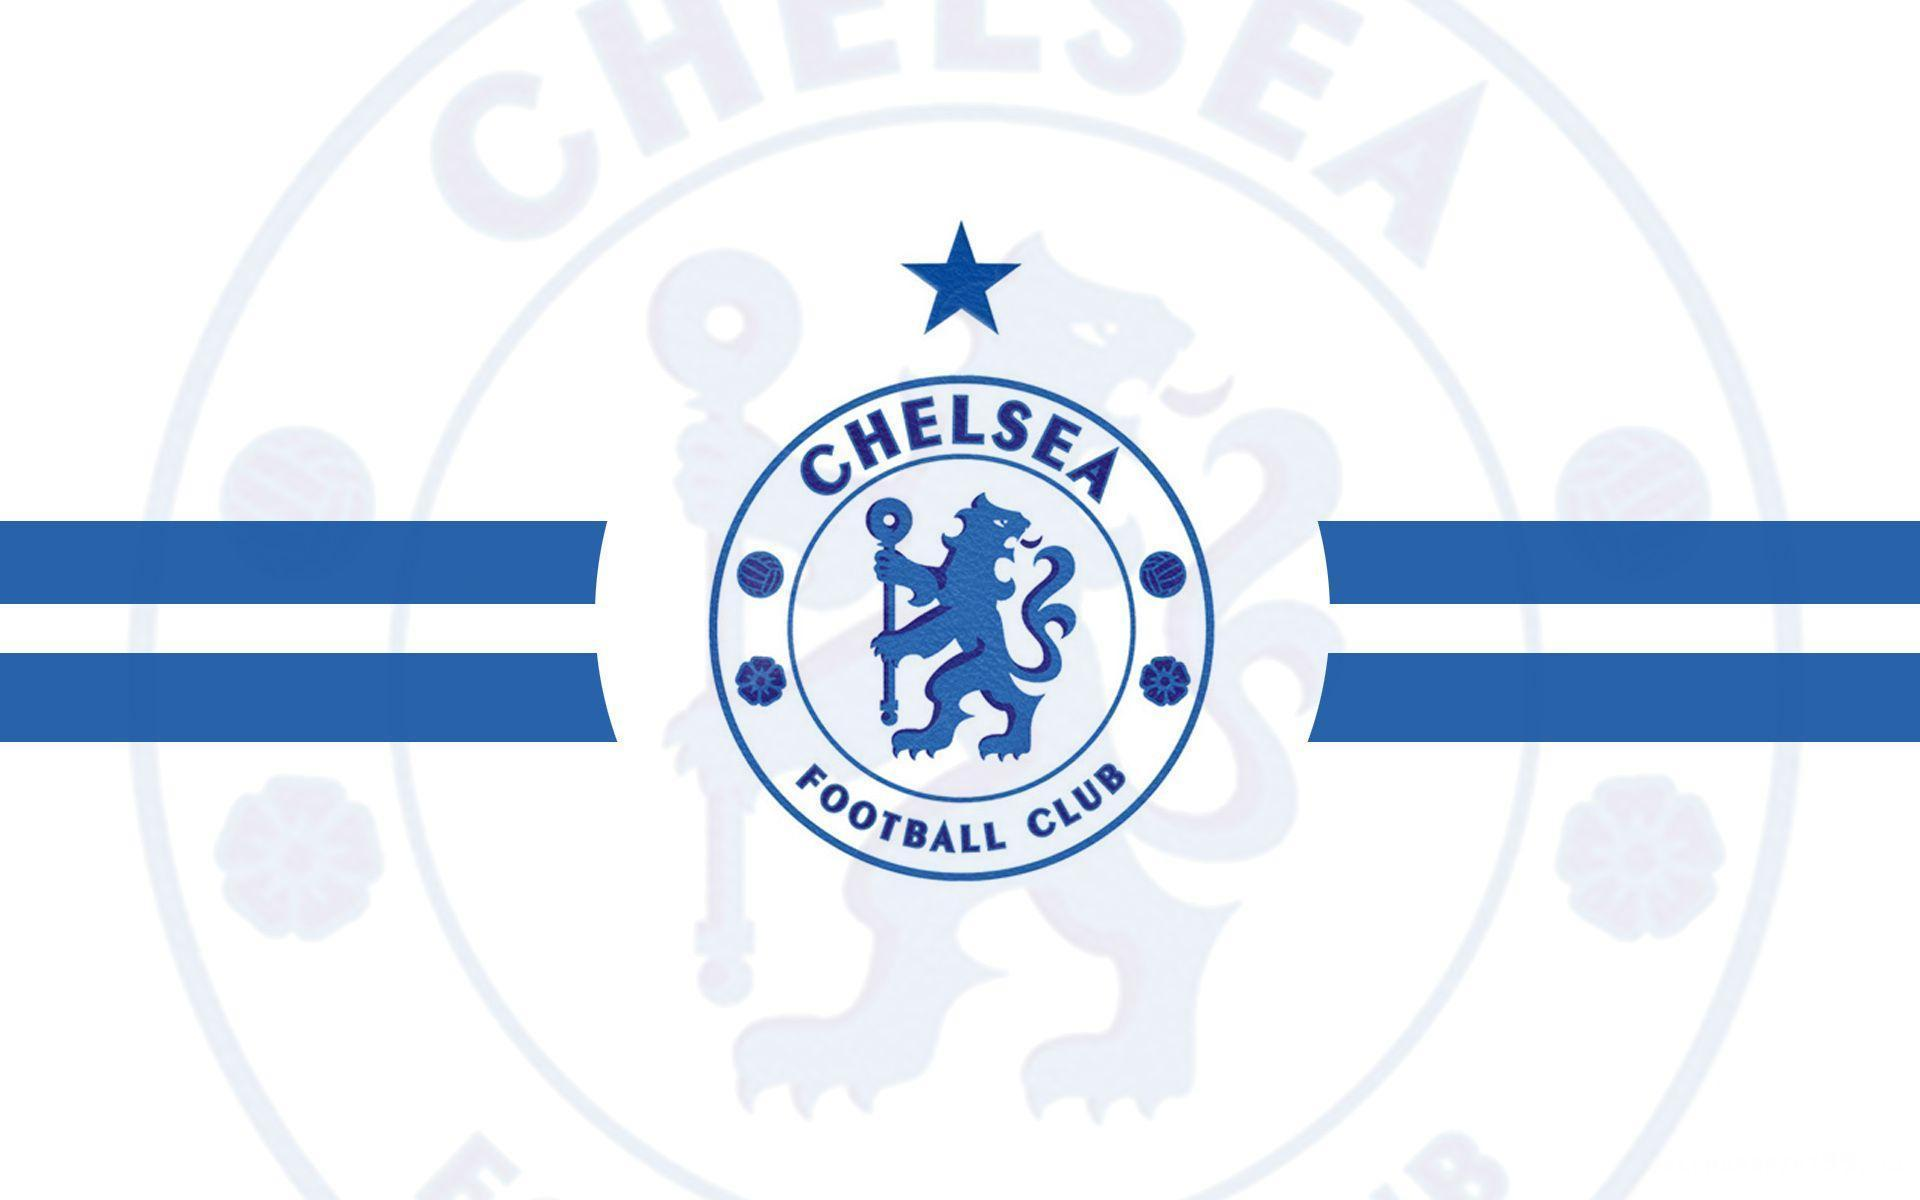 Chelsea HD Wallpapers 2016 - Wallpaper Cave